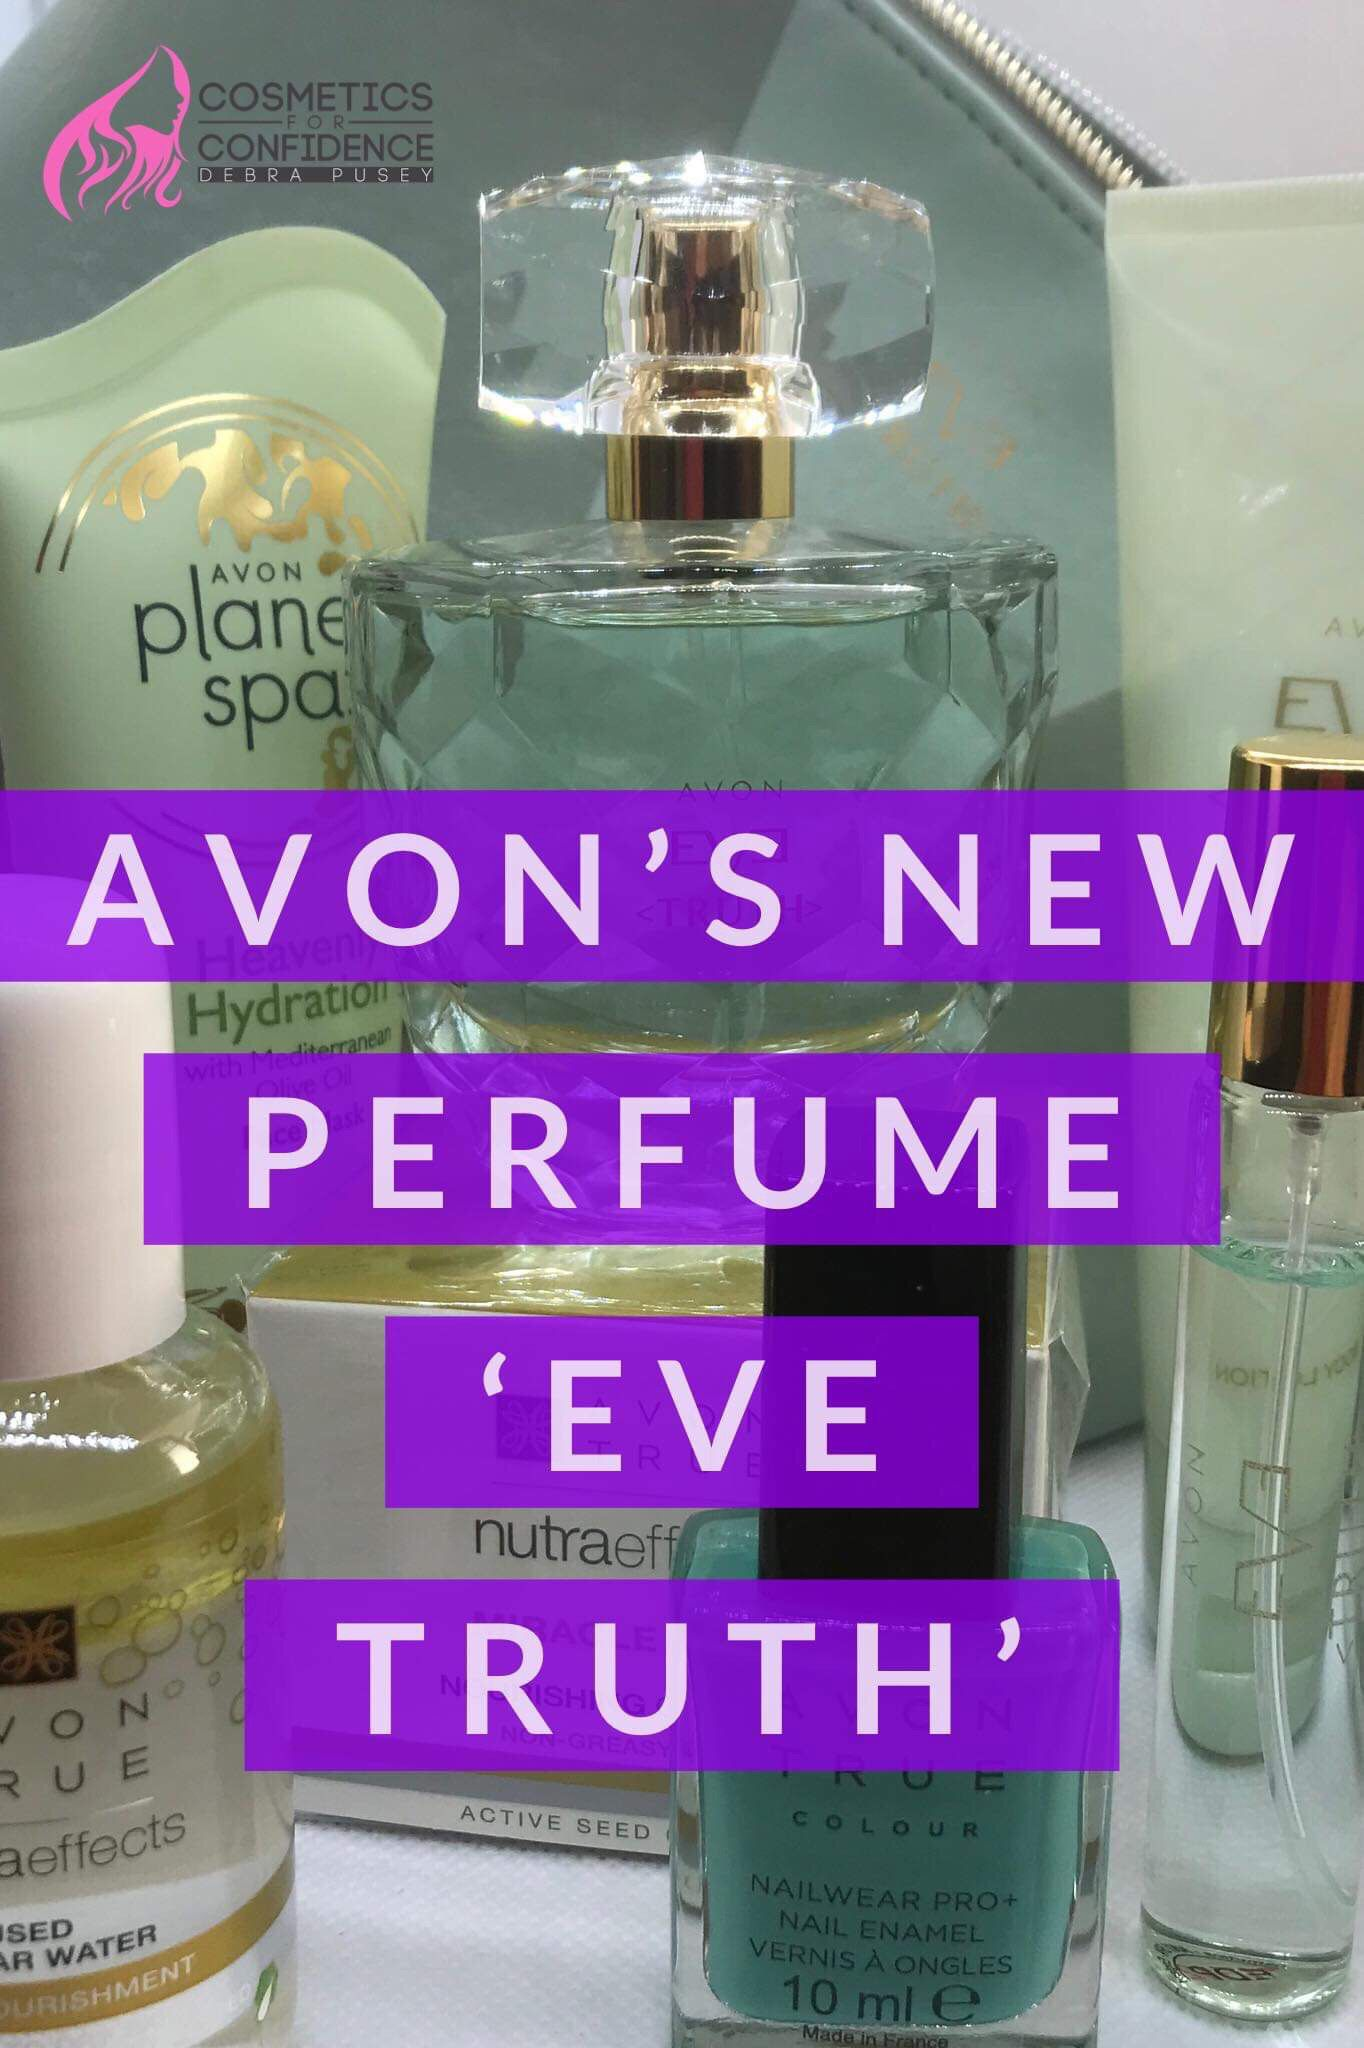 46dd6f95a Avon has just launched a brand new fragrance called 'Eve Truth'. First  impressions we know are so important and the bottle is just stunning. It is  clear ...